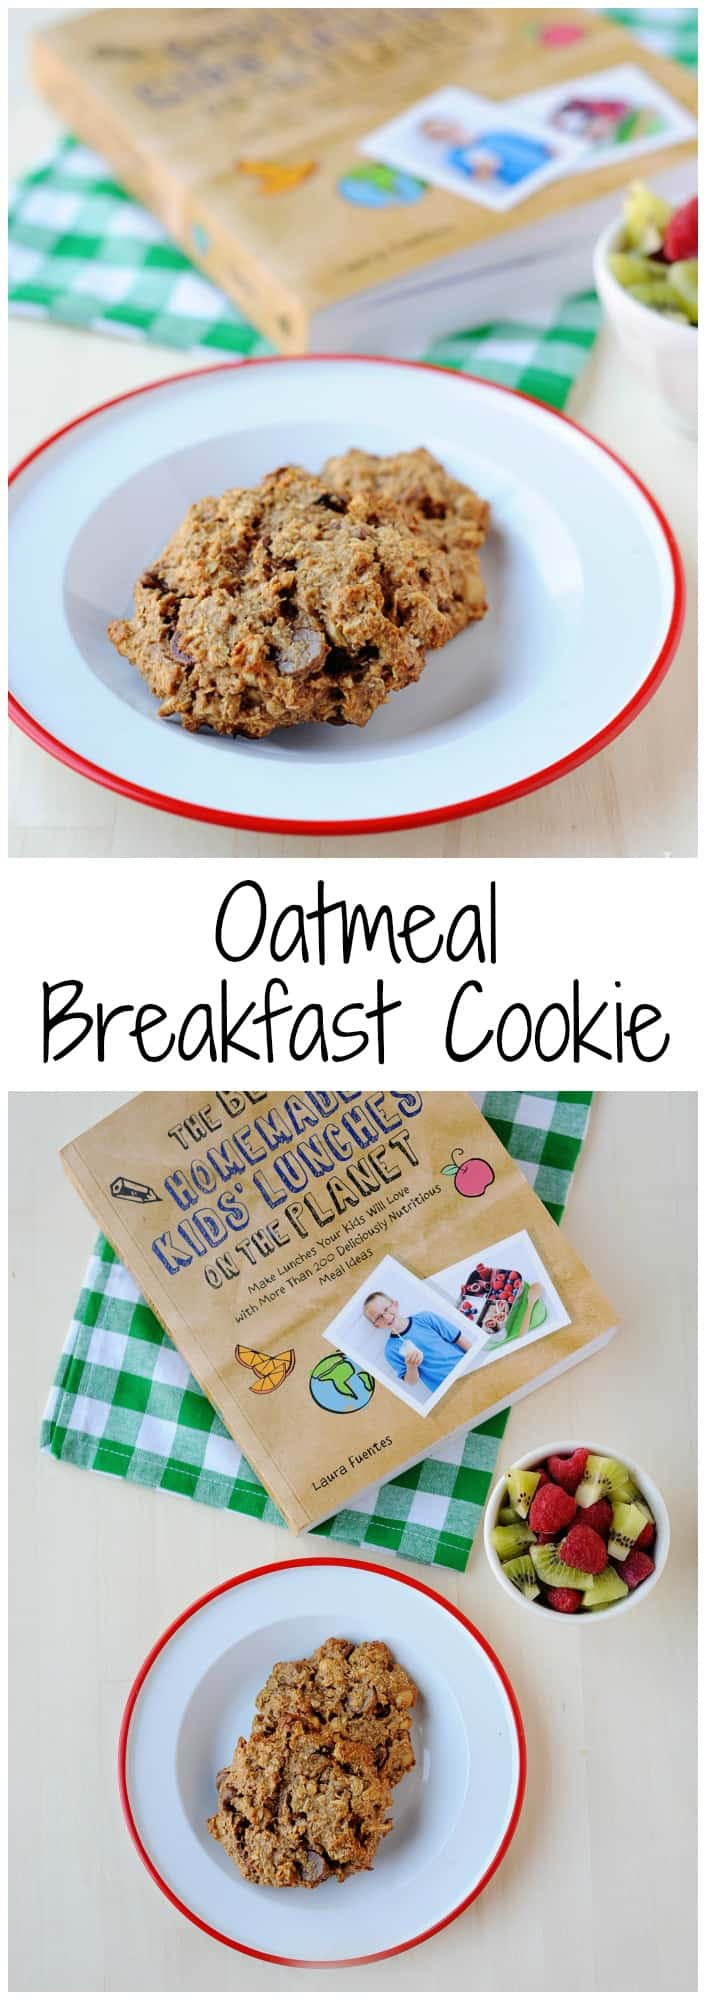 These easy oatmeal breakfast cookies are made in a single bowl and totally kid approved. Included in the post is also the gluten free recipe.